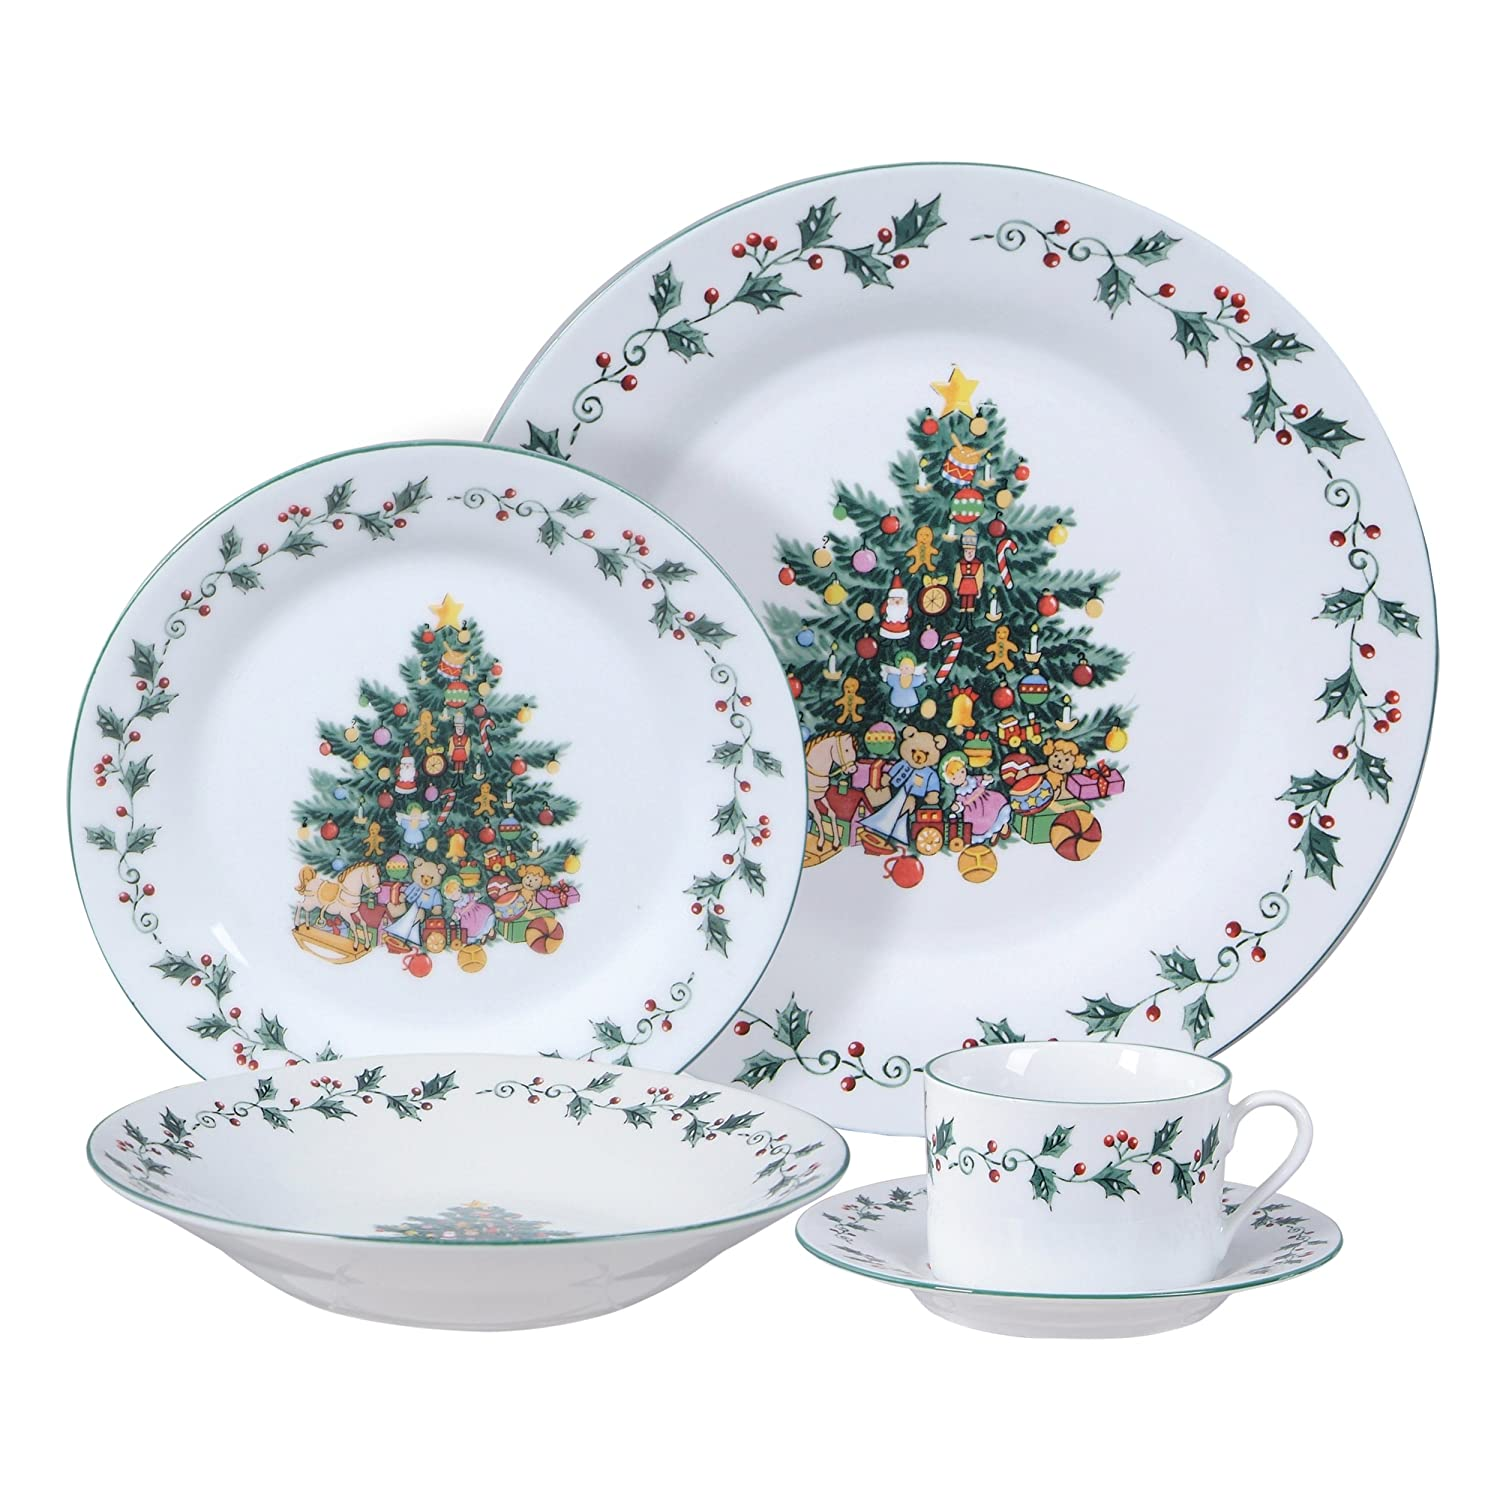 Christmas Trees Dinnerware Sets - Christmas Wikii